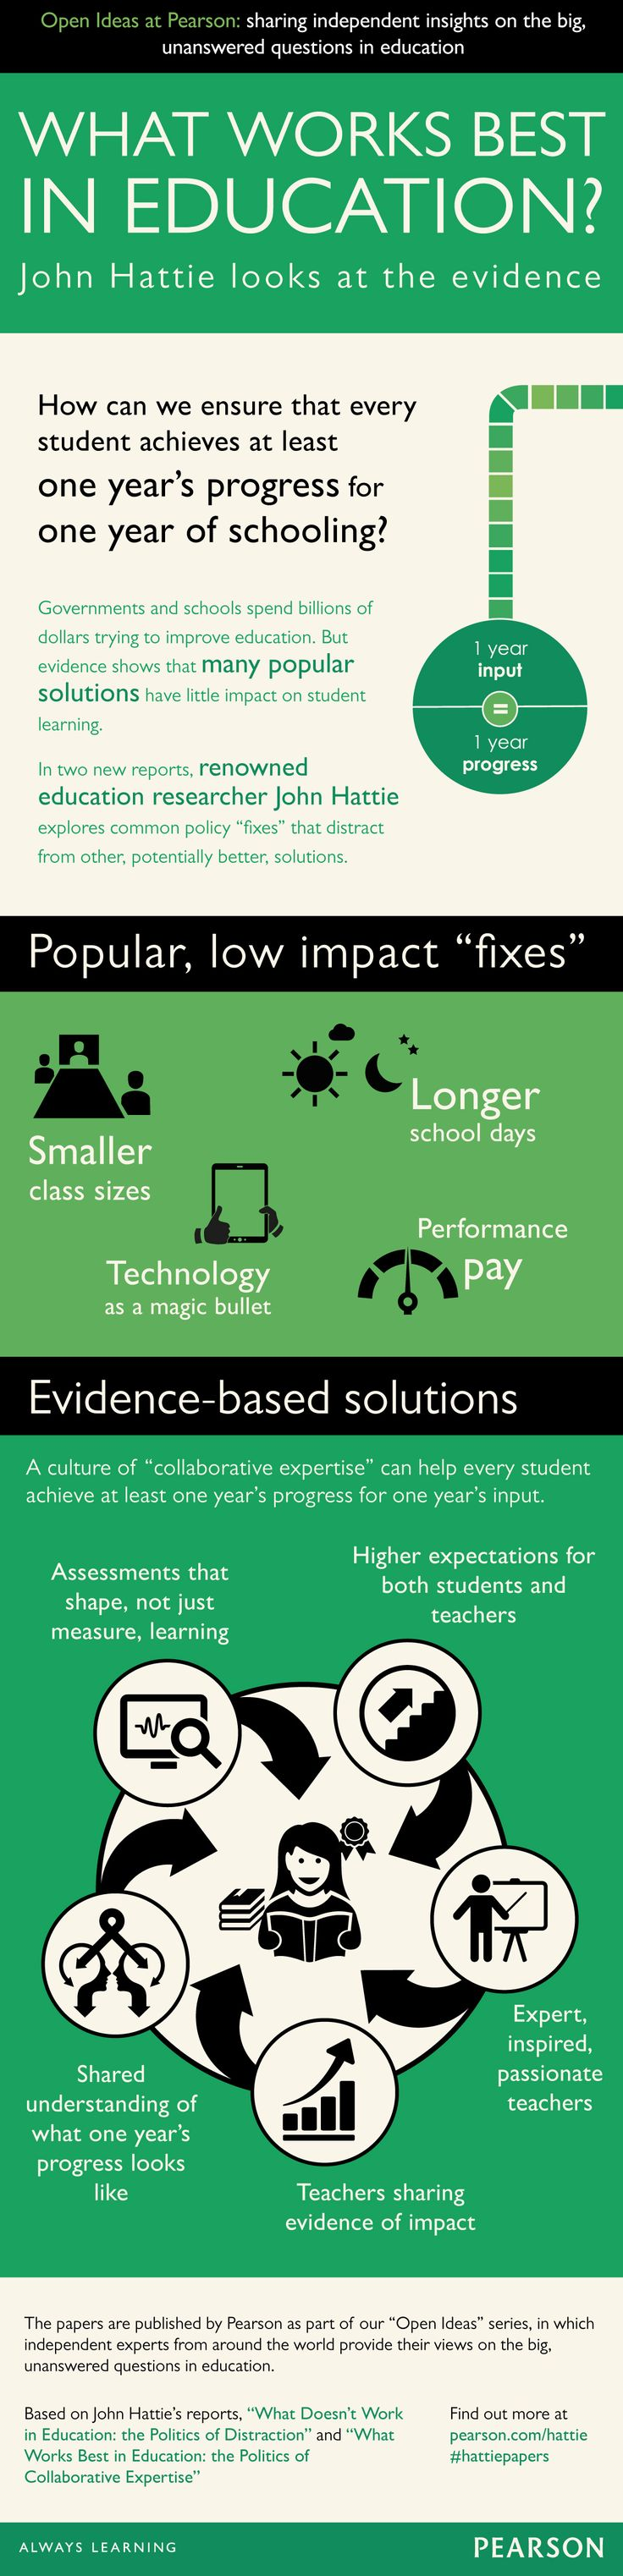 What works best in education? John Hattie ooks at the evidence